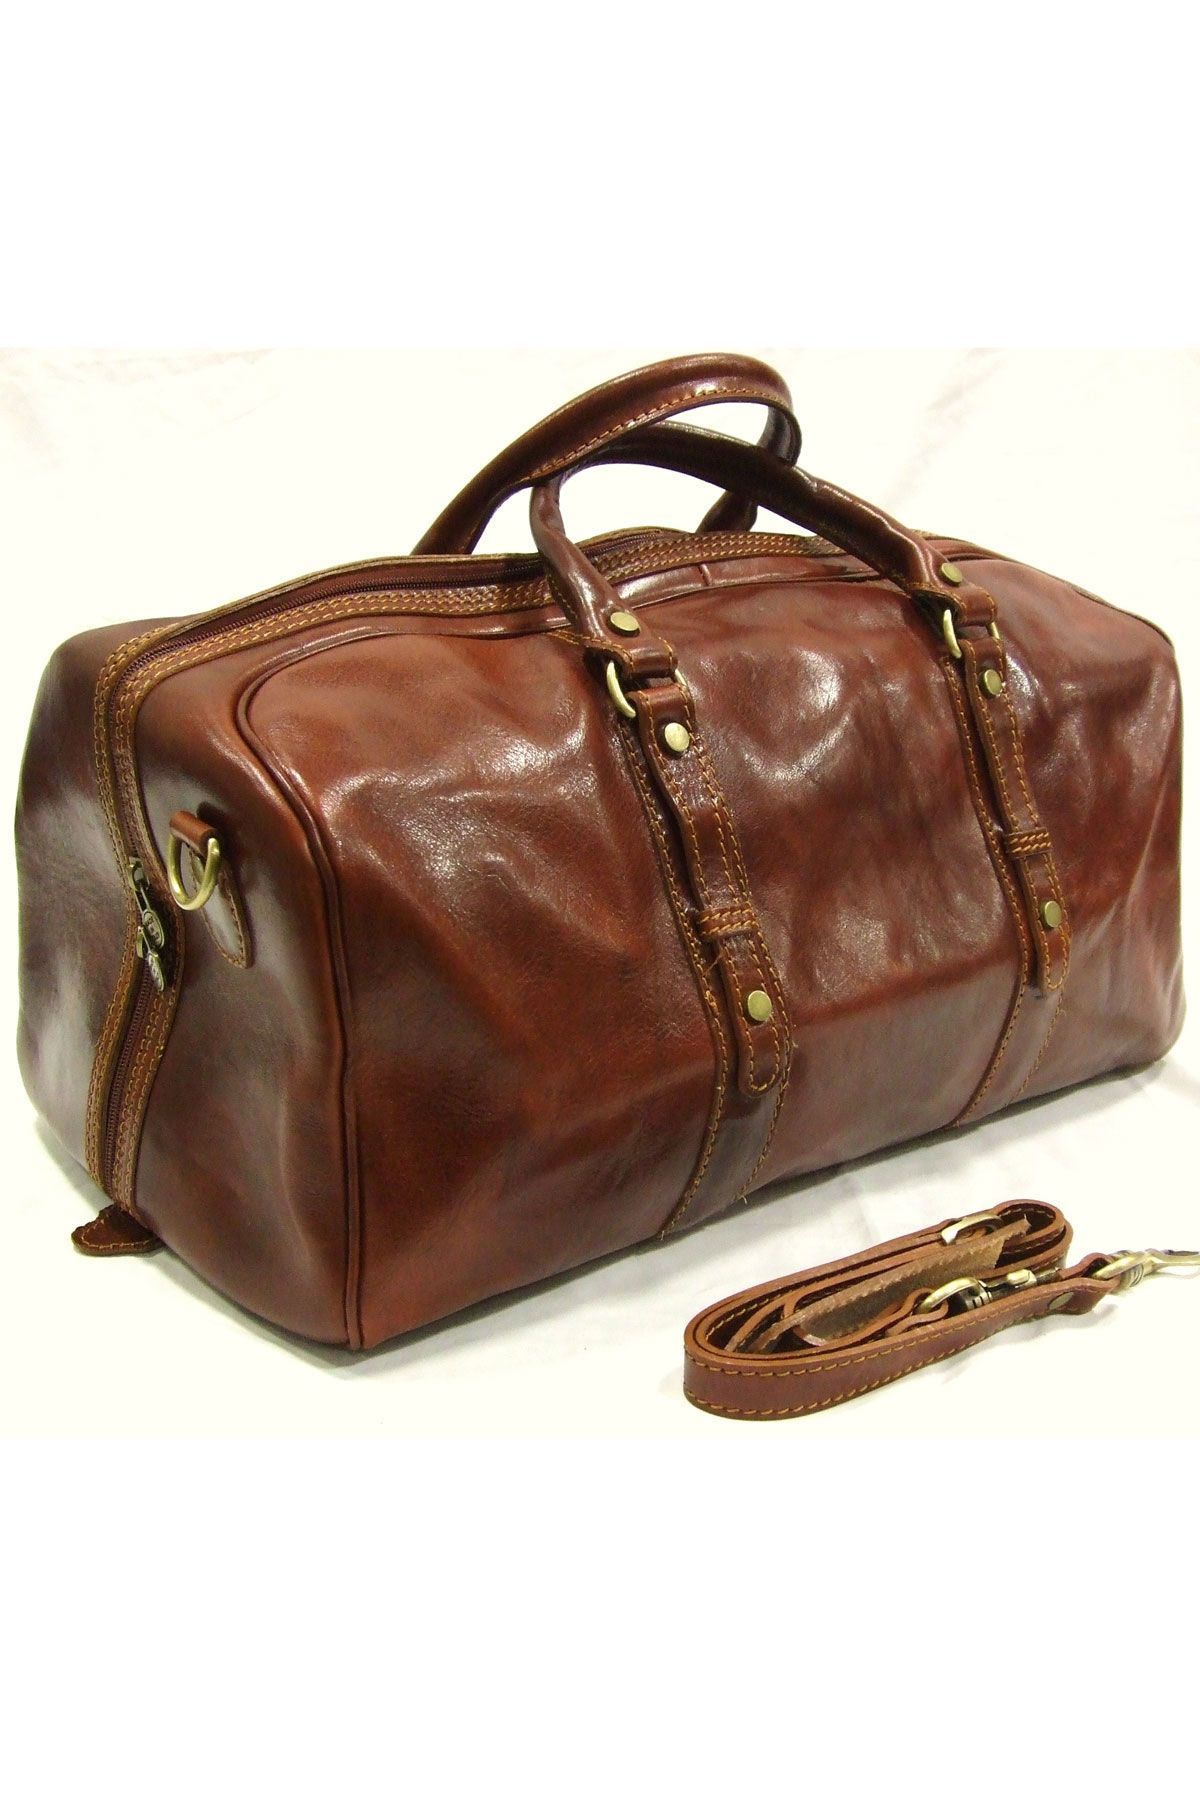 Italian Leather Travel Bag by Woodland Leather   oh my oh my duffel ... bb8a1140ef